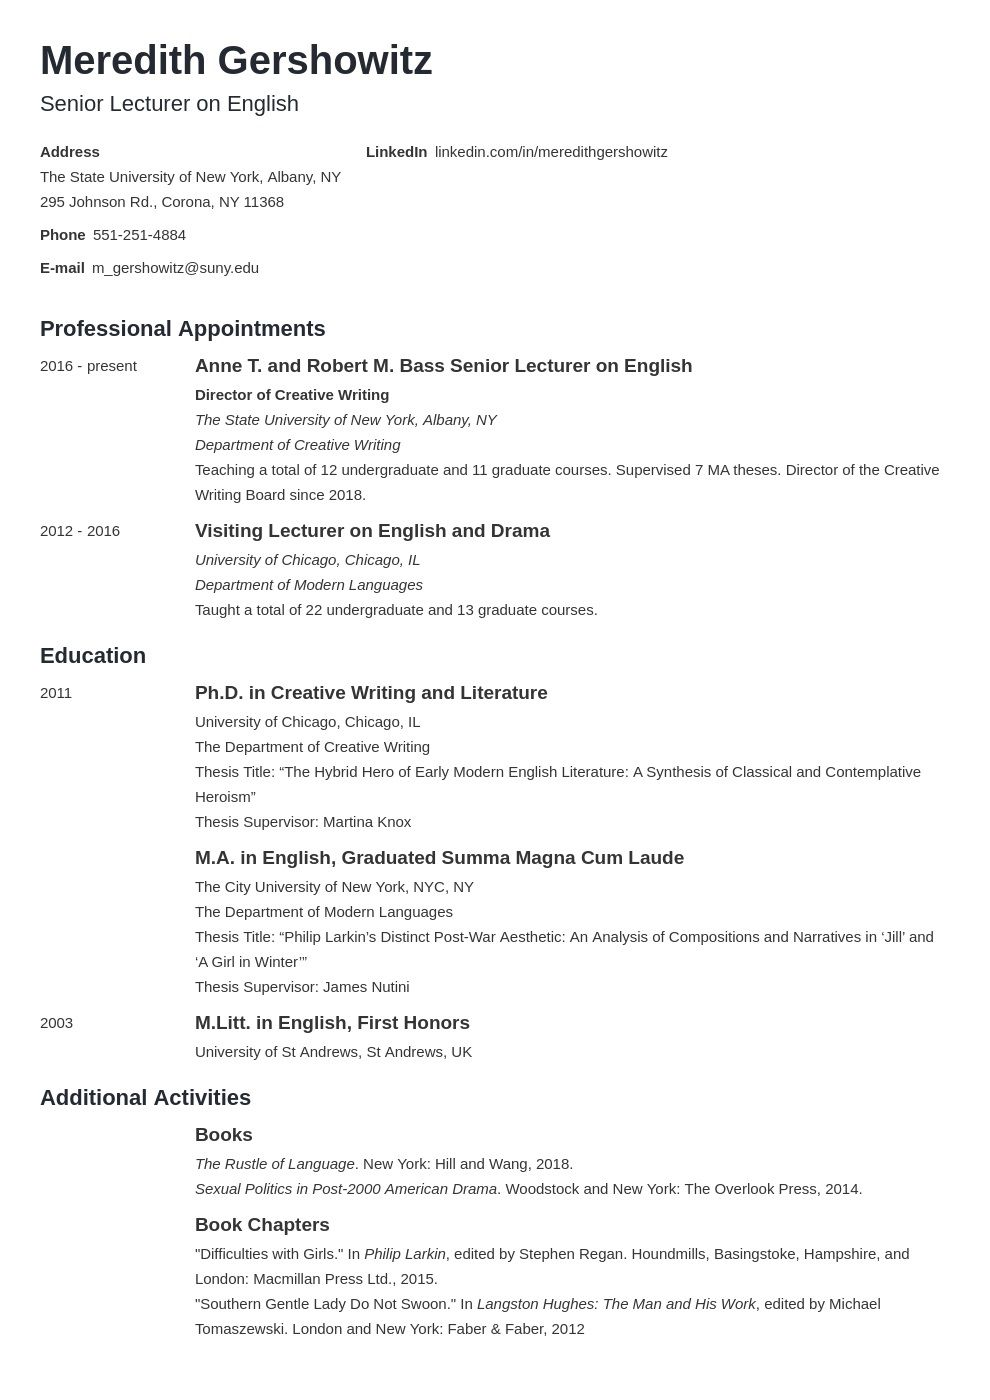 005 Fearsome Curriculum Vitae Template Student Example  Sample College Undergraduate For Research PaperFull